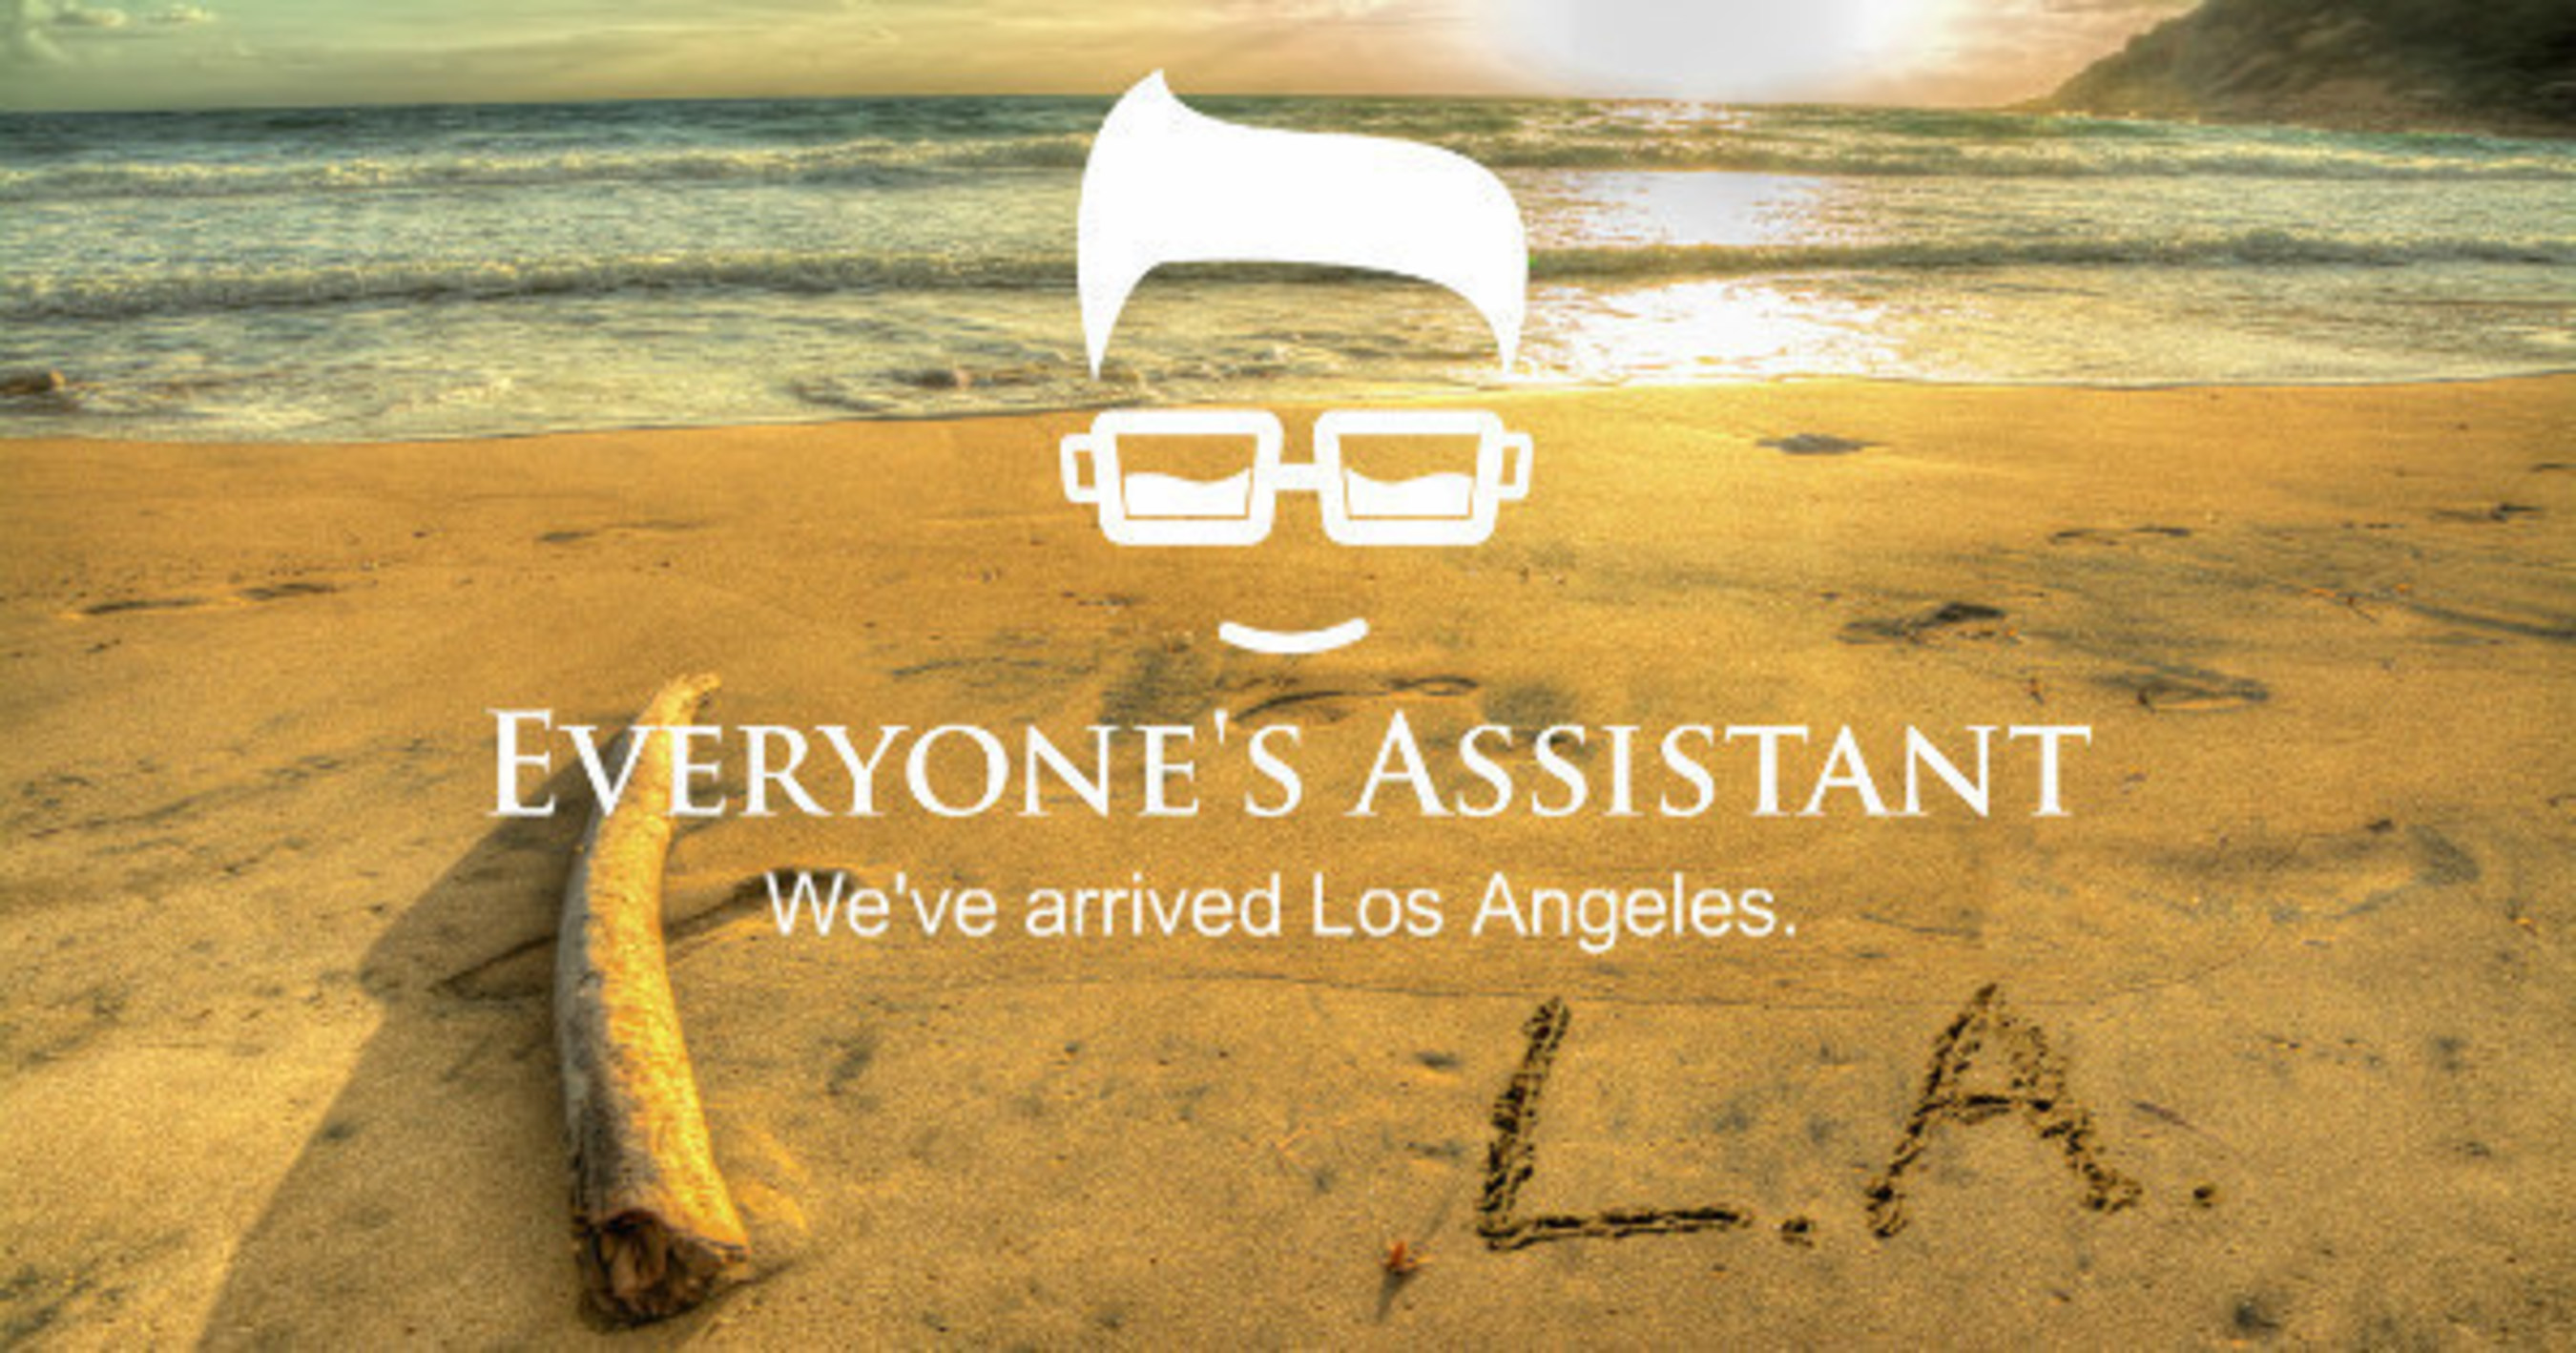 Everyone's Assistant Launches to Provide Affordable and Easily Accessible On-Demand Personal